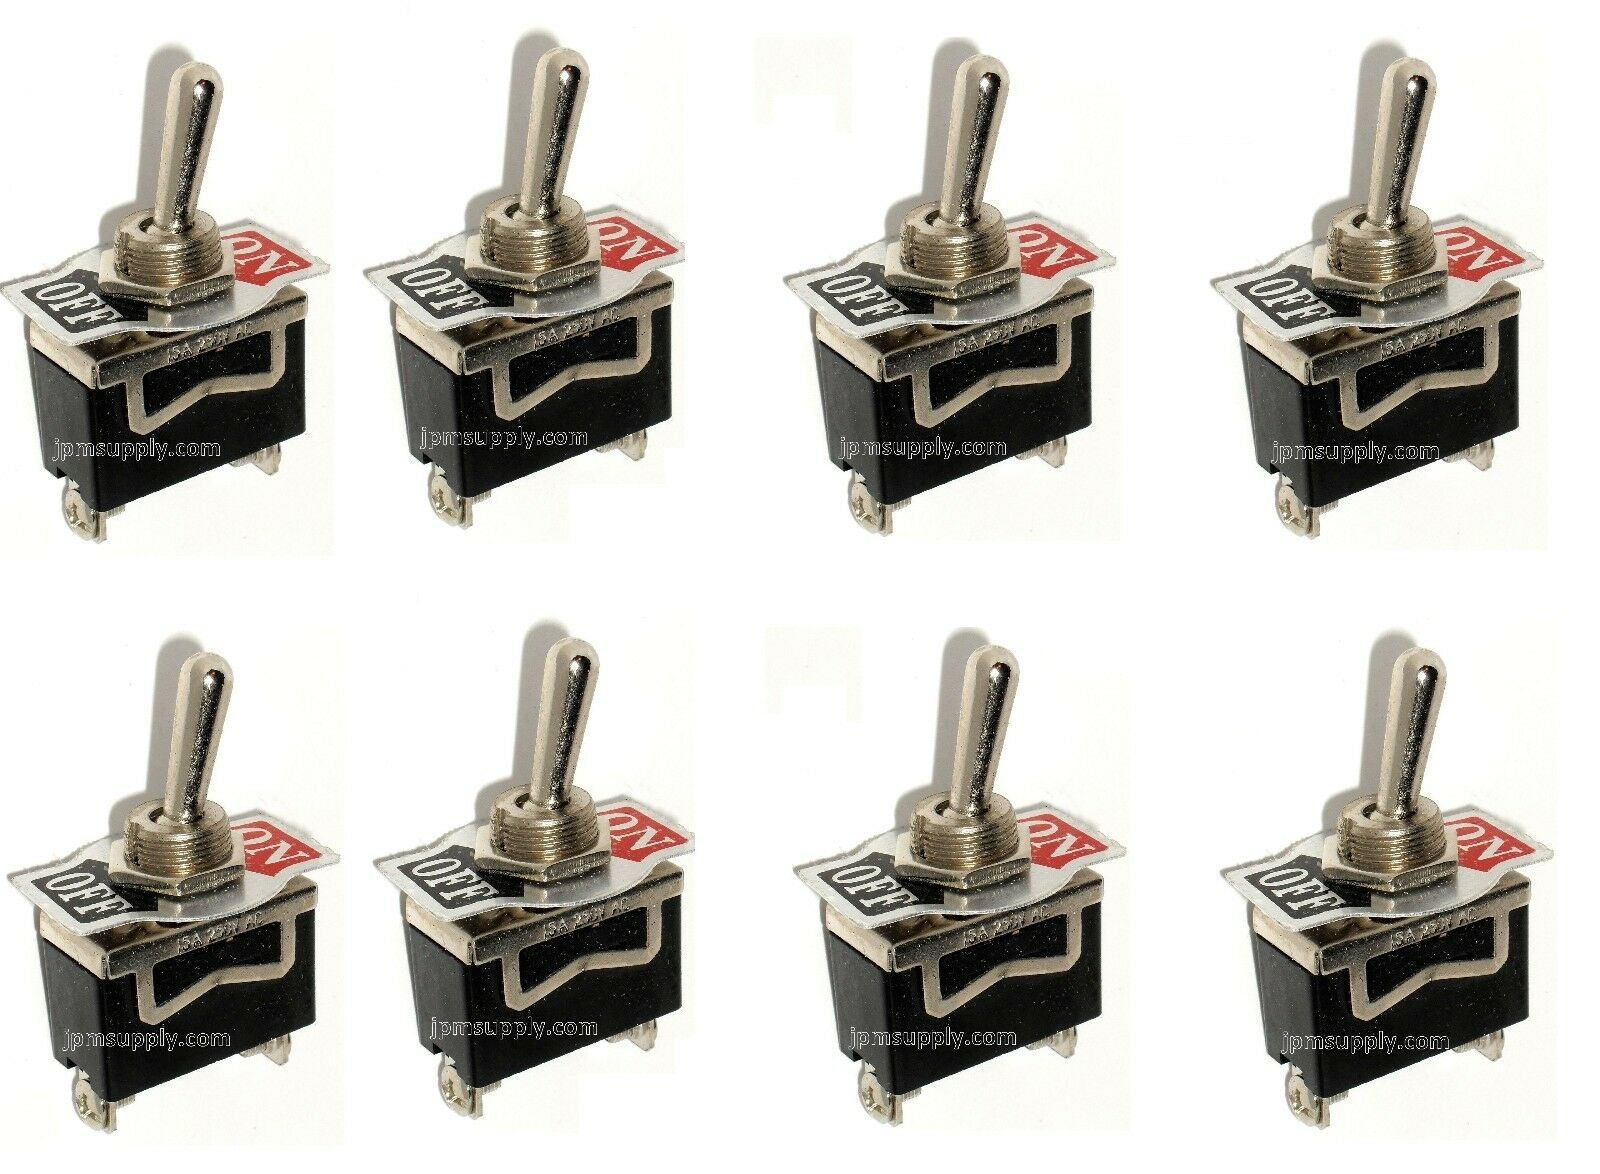 8 Spst On Off Toggle Switches 20amp 1 2 Mount 1199 Picclick Rocker Mini Switch Onoff Of 3